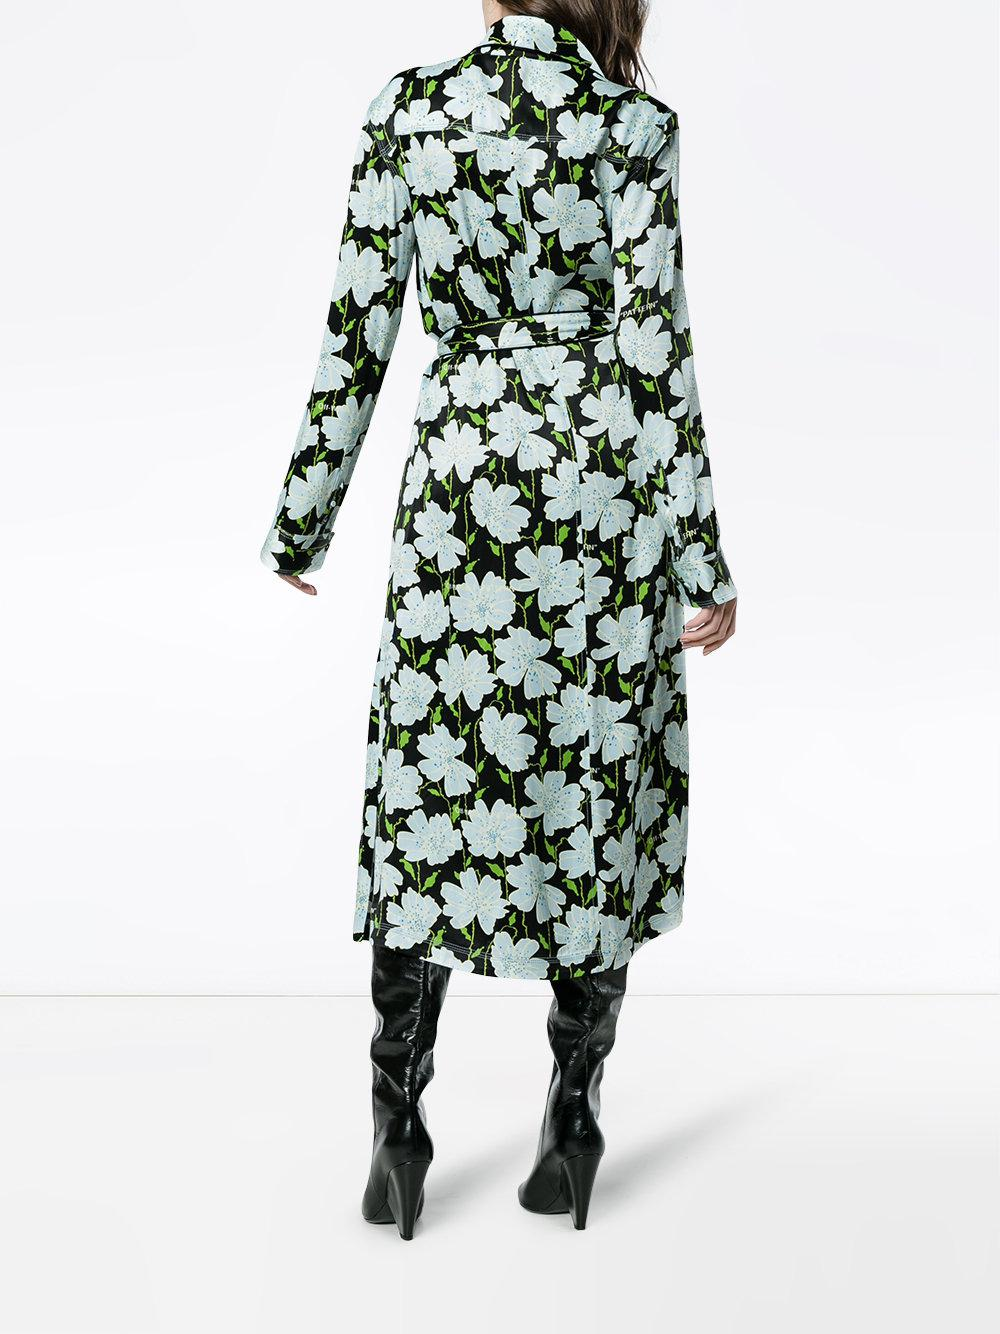 709fbcb7 Off-White c/o Virgil Abloh - Green Floral Belted Robe Jacket - Lyst. View  fullscreen